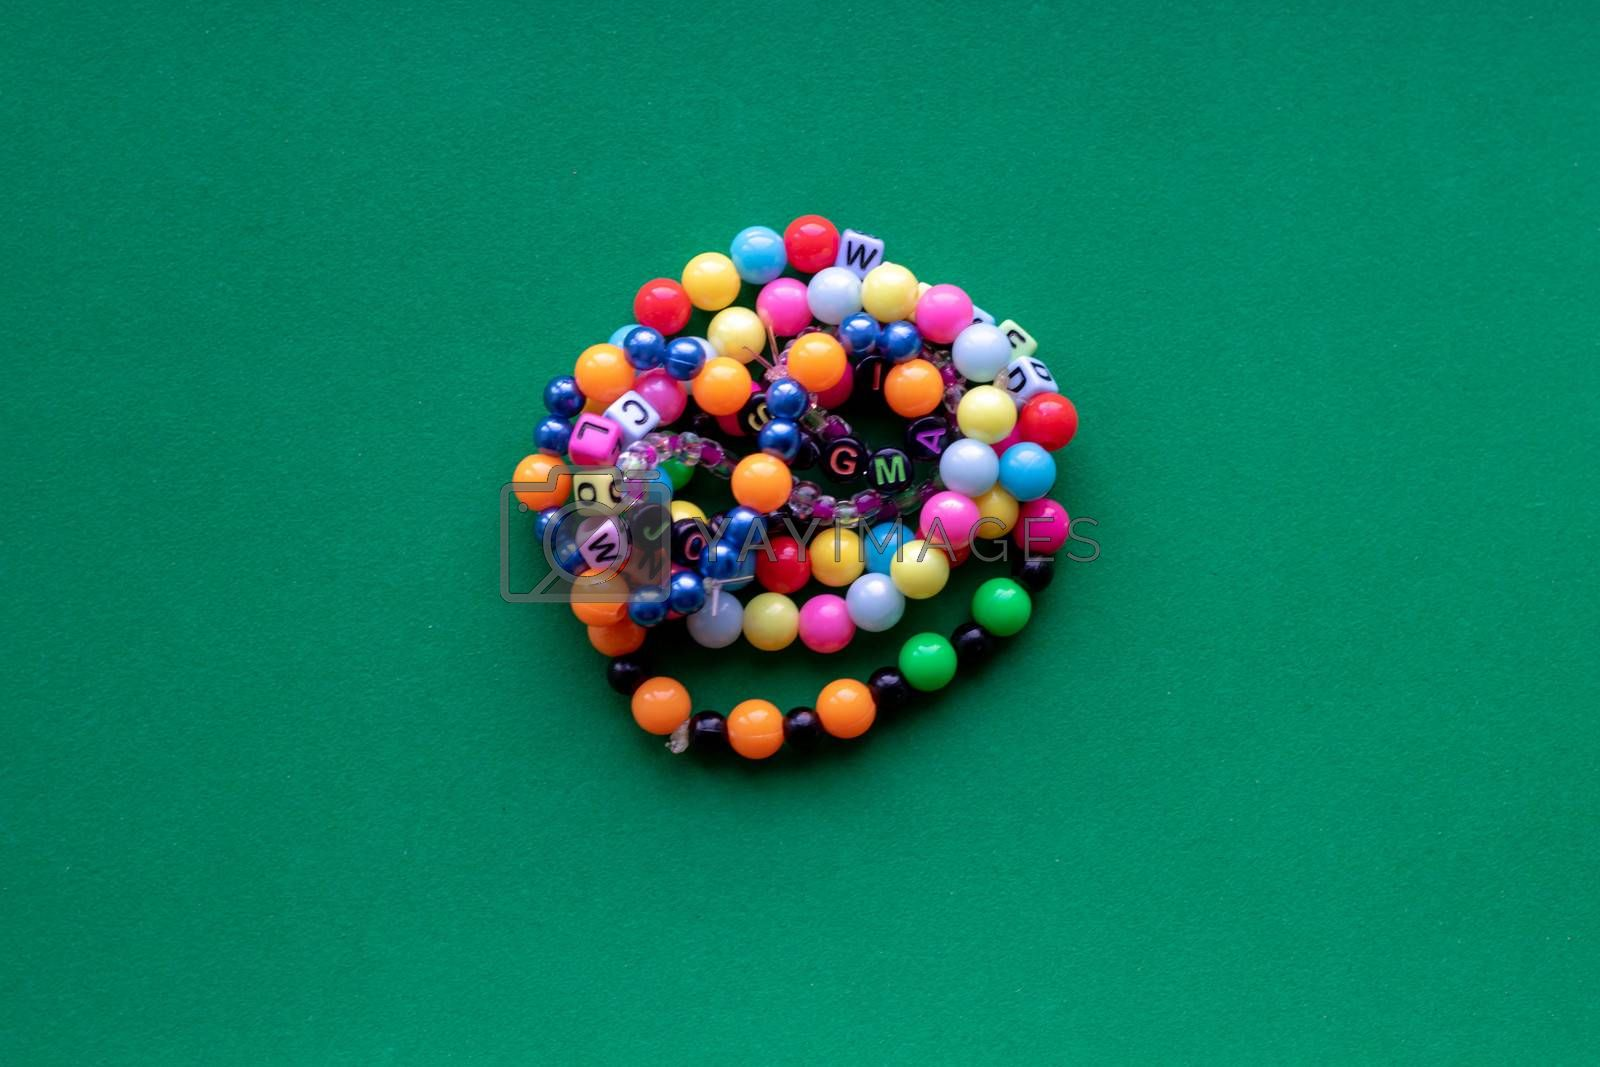 Eight multi-colored bracelets arranged in a flower shape on a green background. Bracelet with beads.